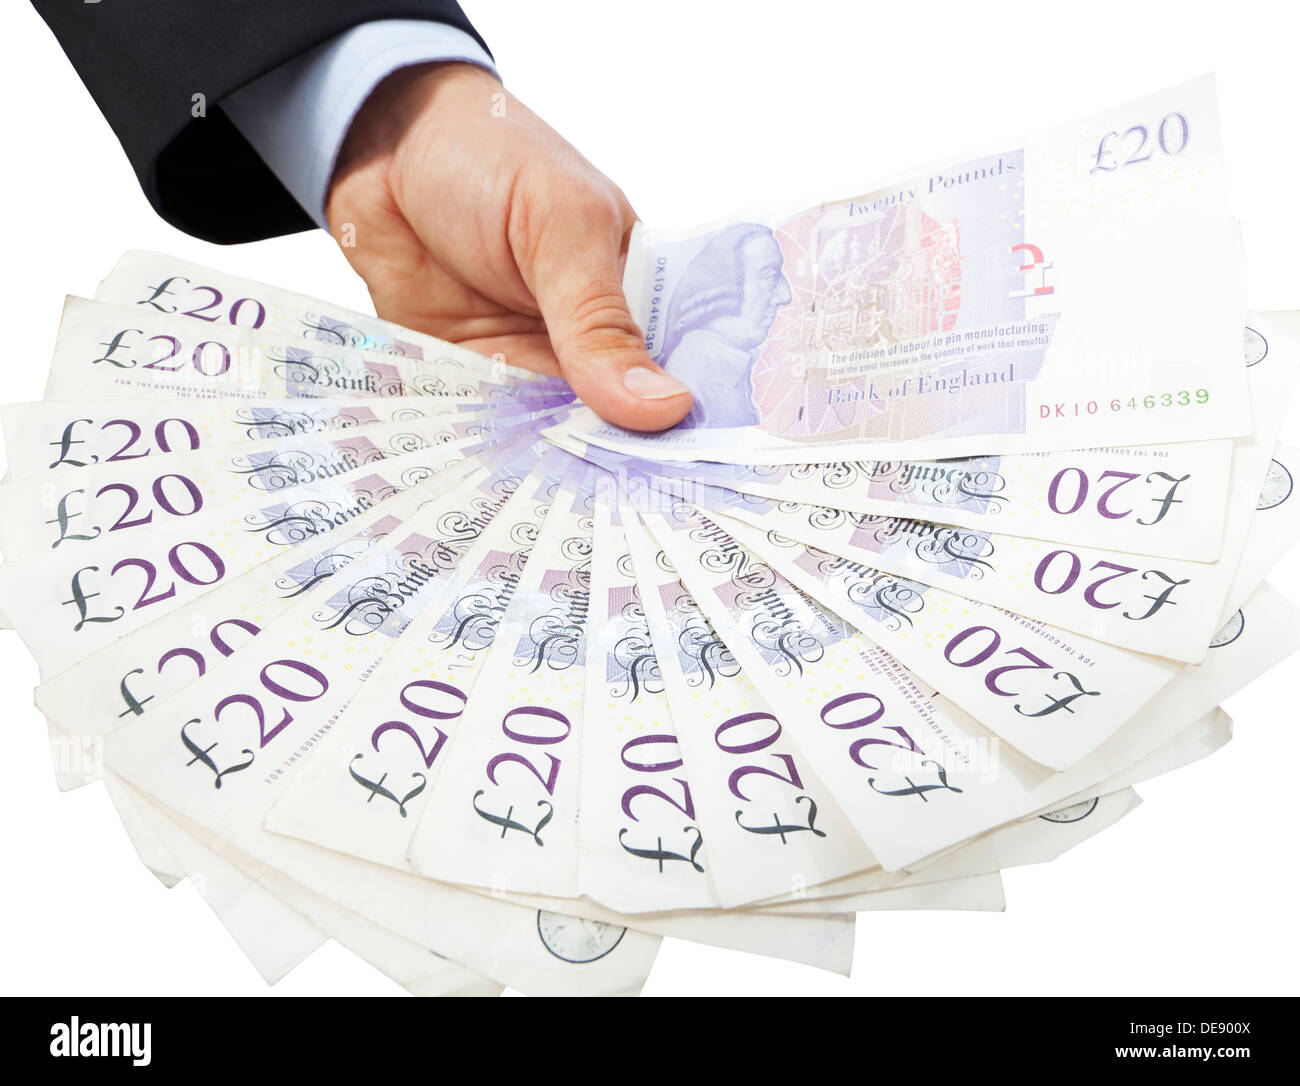 Close-up of a hand holding a fan of twenty pound notes against a white background. - Stock Image